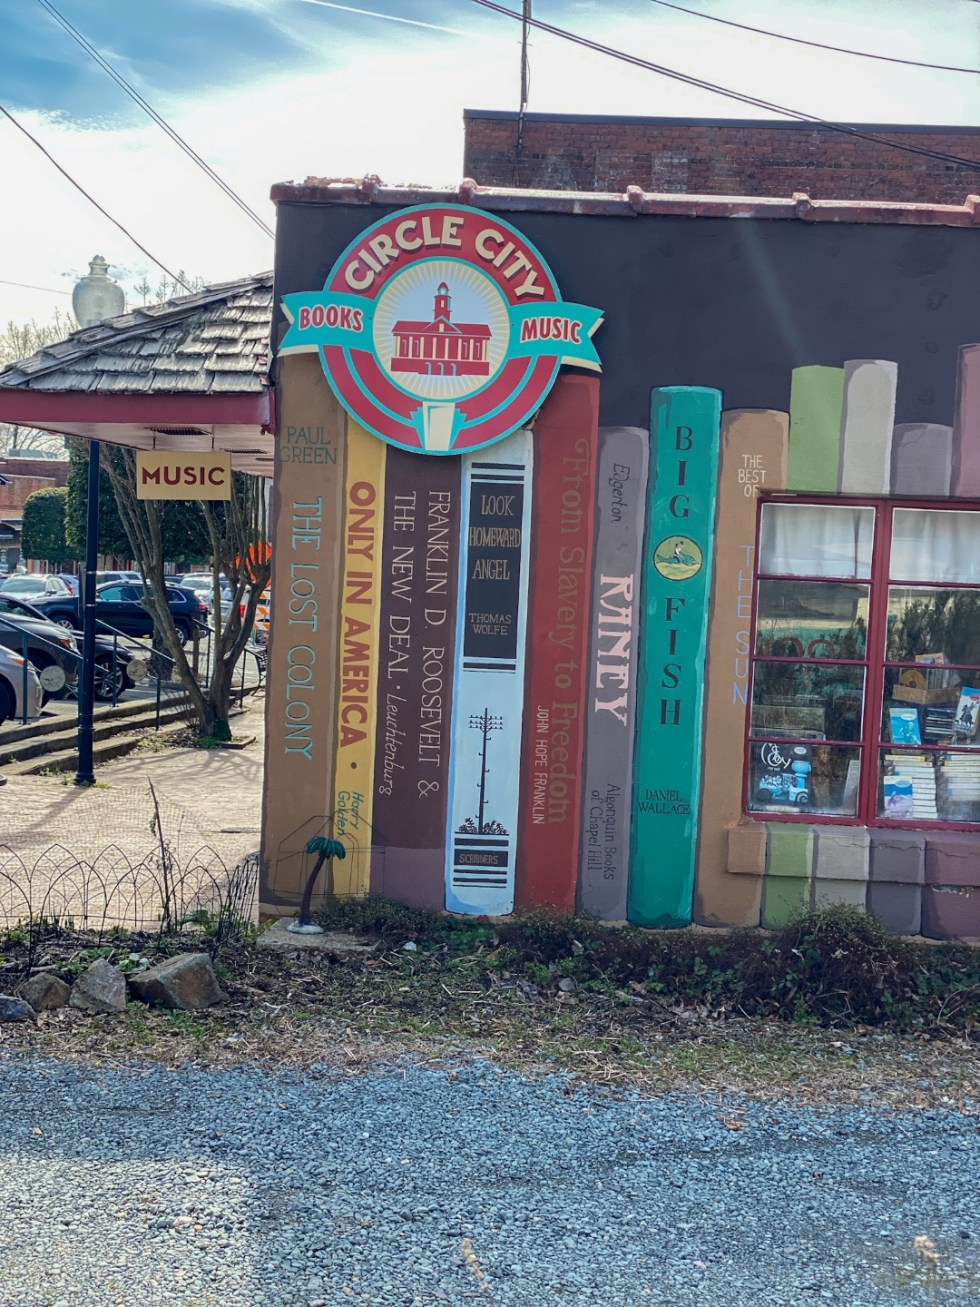 15 Things to Do in Pittsboro, NC - I'm Fixin' To - @imfixintoblog